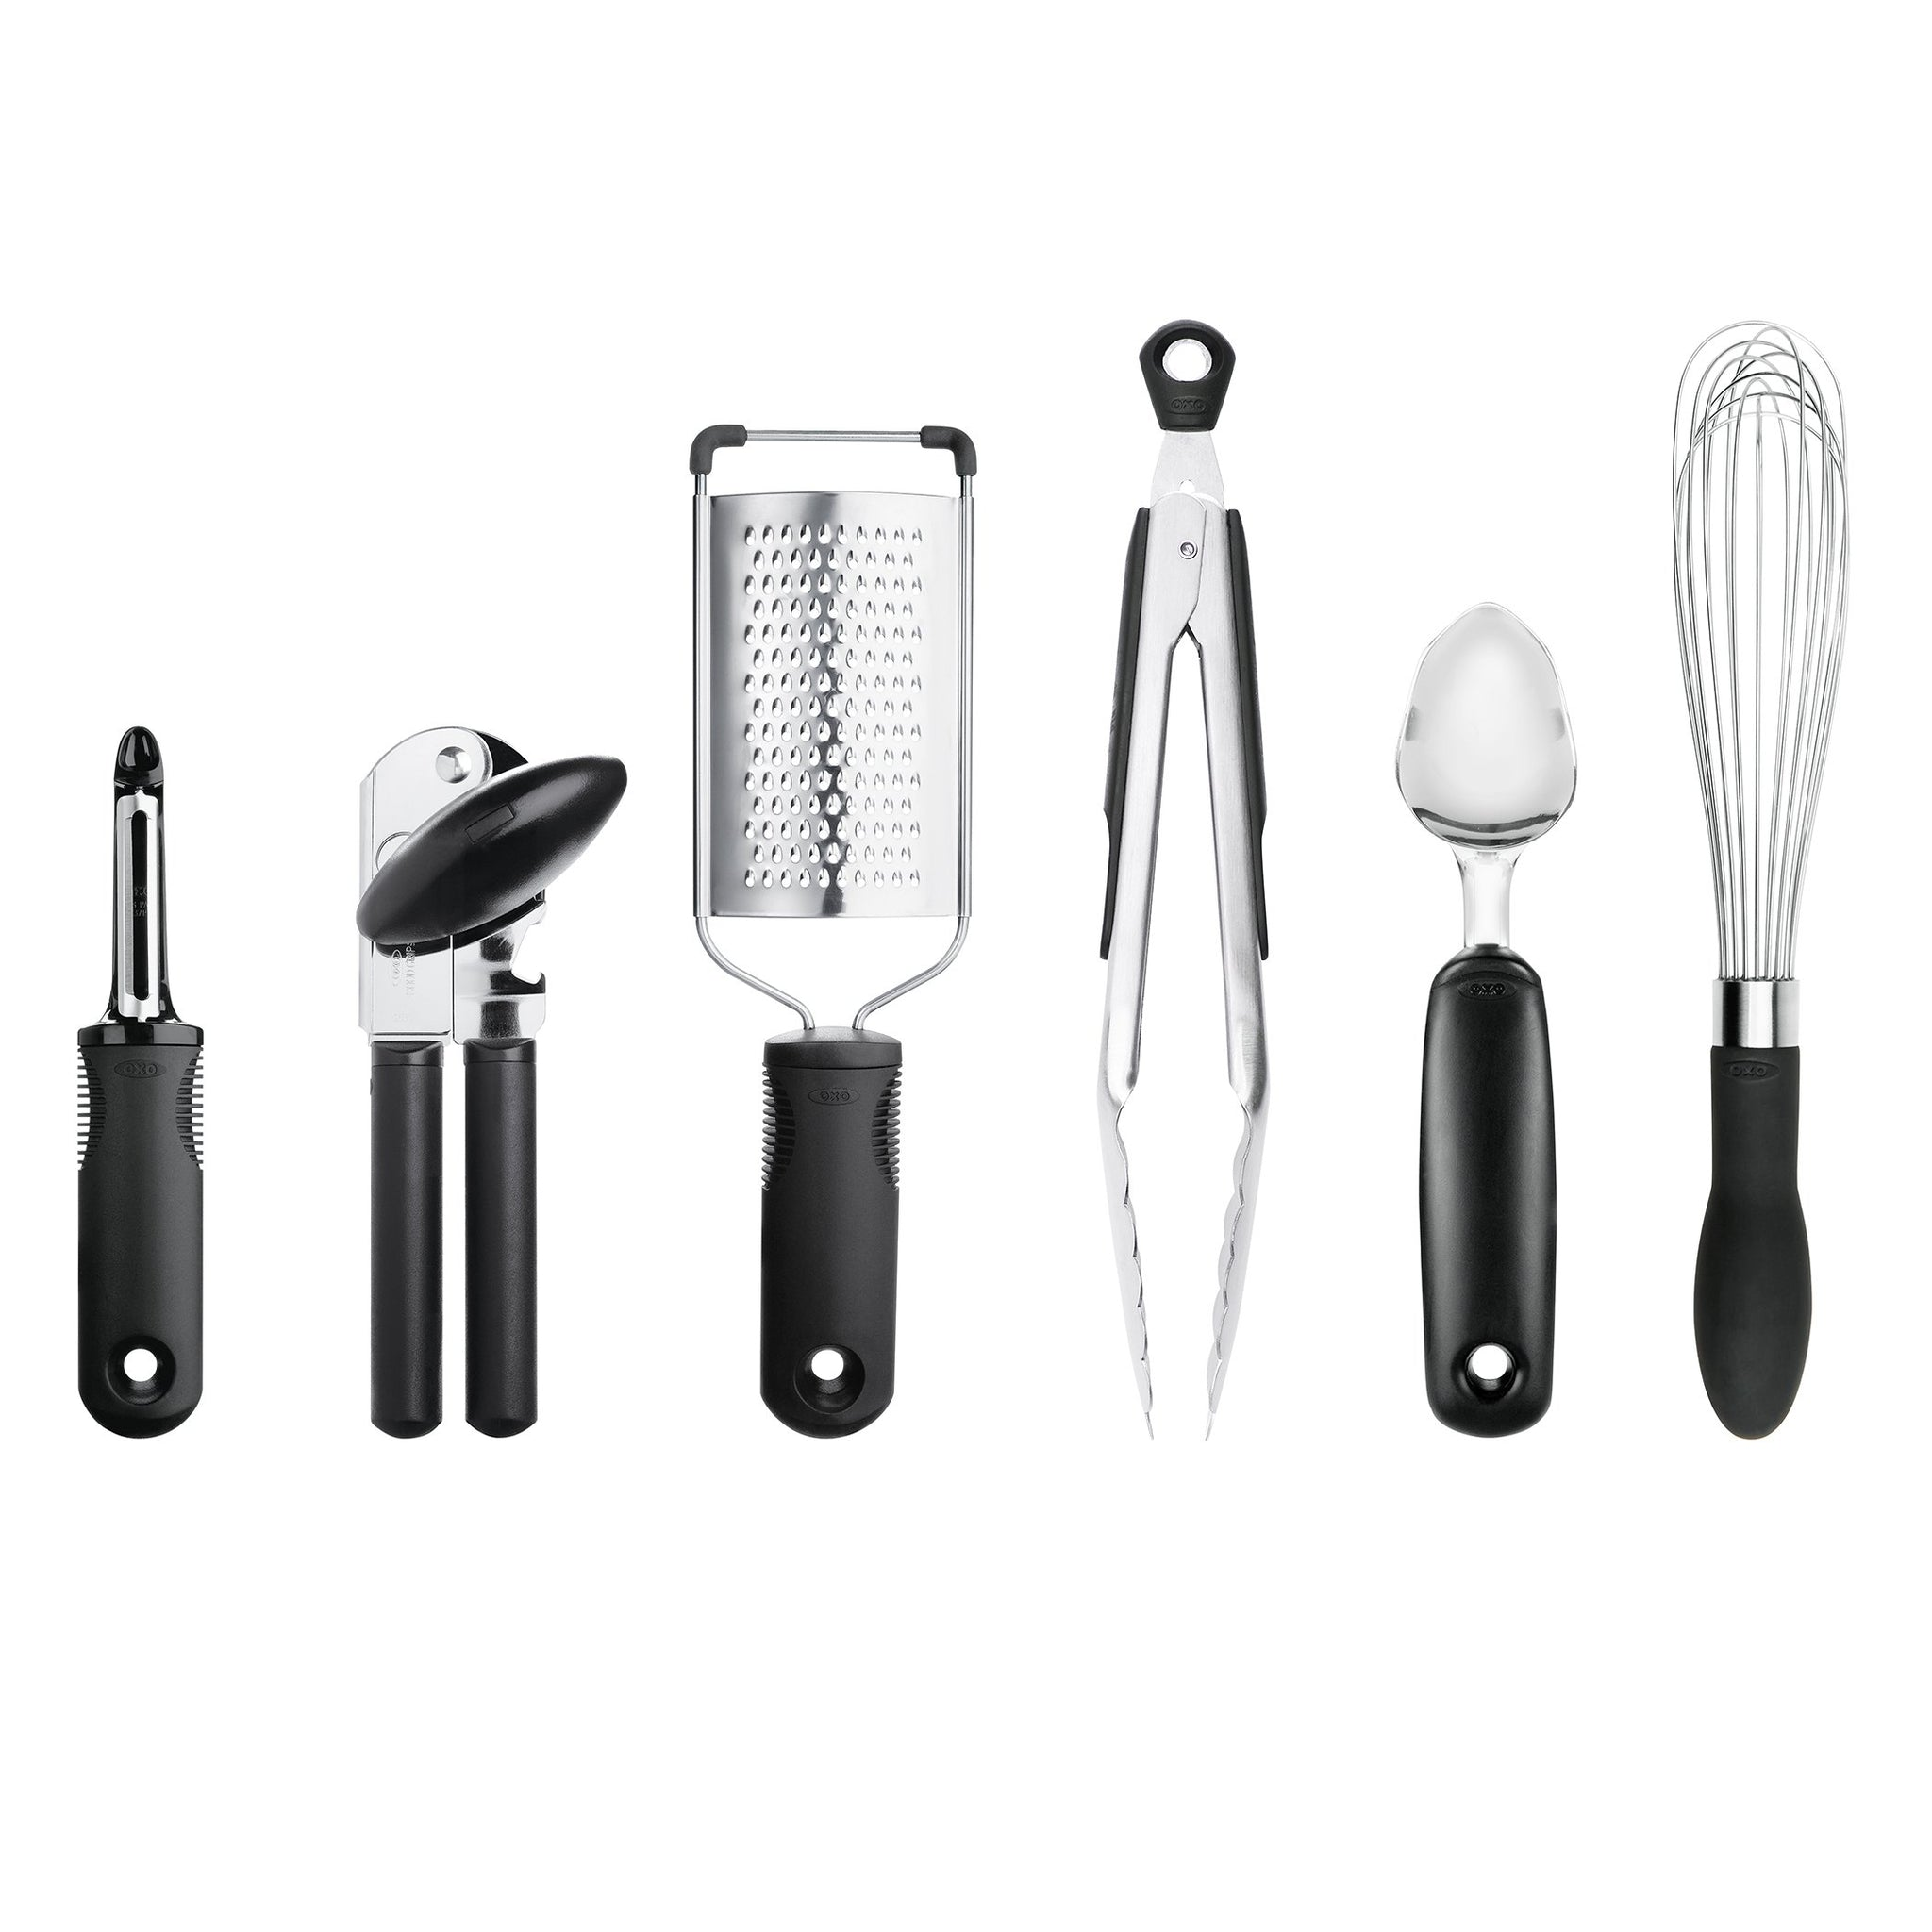 OXO 76781 Good Grips 6-Piece Kitchen Essentials Set, Black